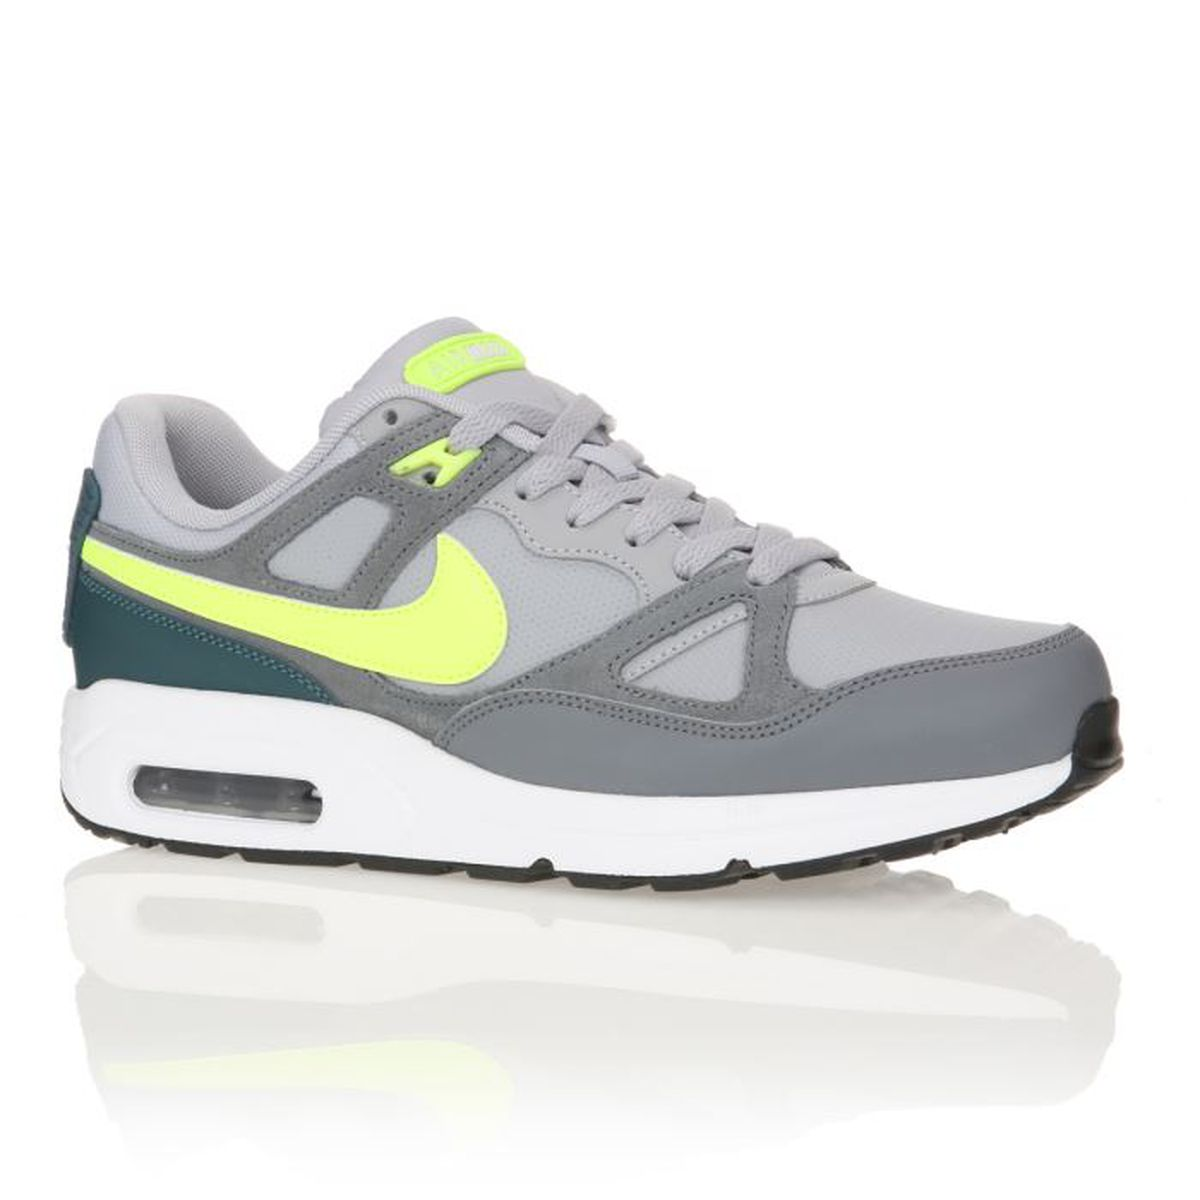 nike baskets air max span homme homme gris jaune vert achat vente nike baskets air max. Black Bedroom Furniture Sets. Home Design Ideas